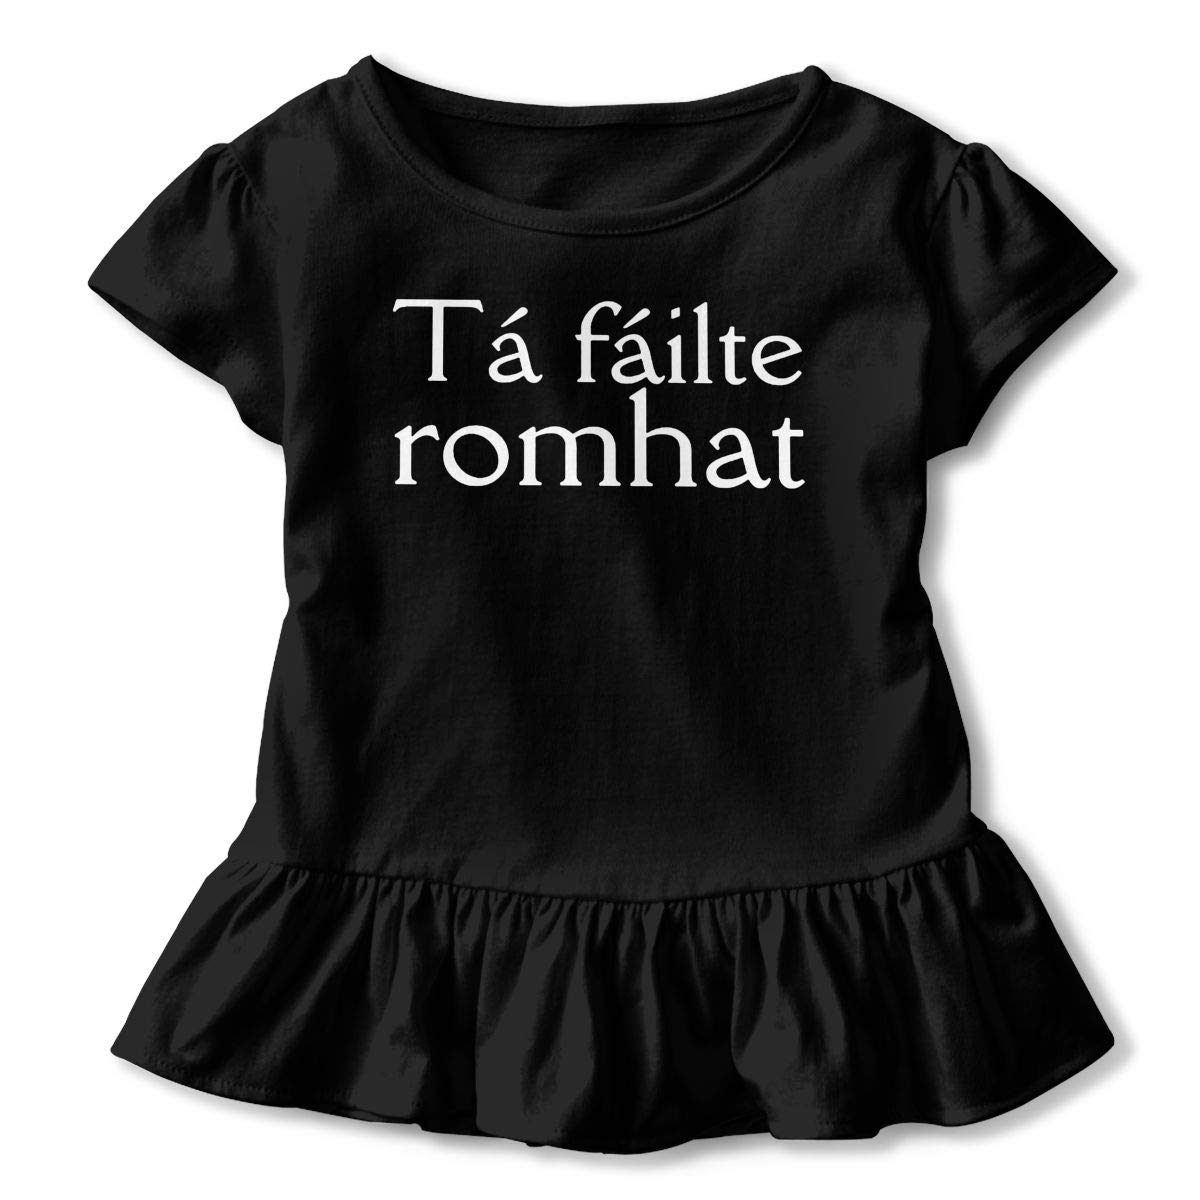 Irish Welcome Greeting Toddler Girls Cute Animal Floral Letter Print at Front Short Sleeve Casual Summer Baby Children Tunic Dress Shirt Black